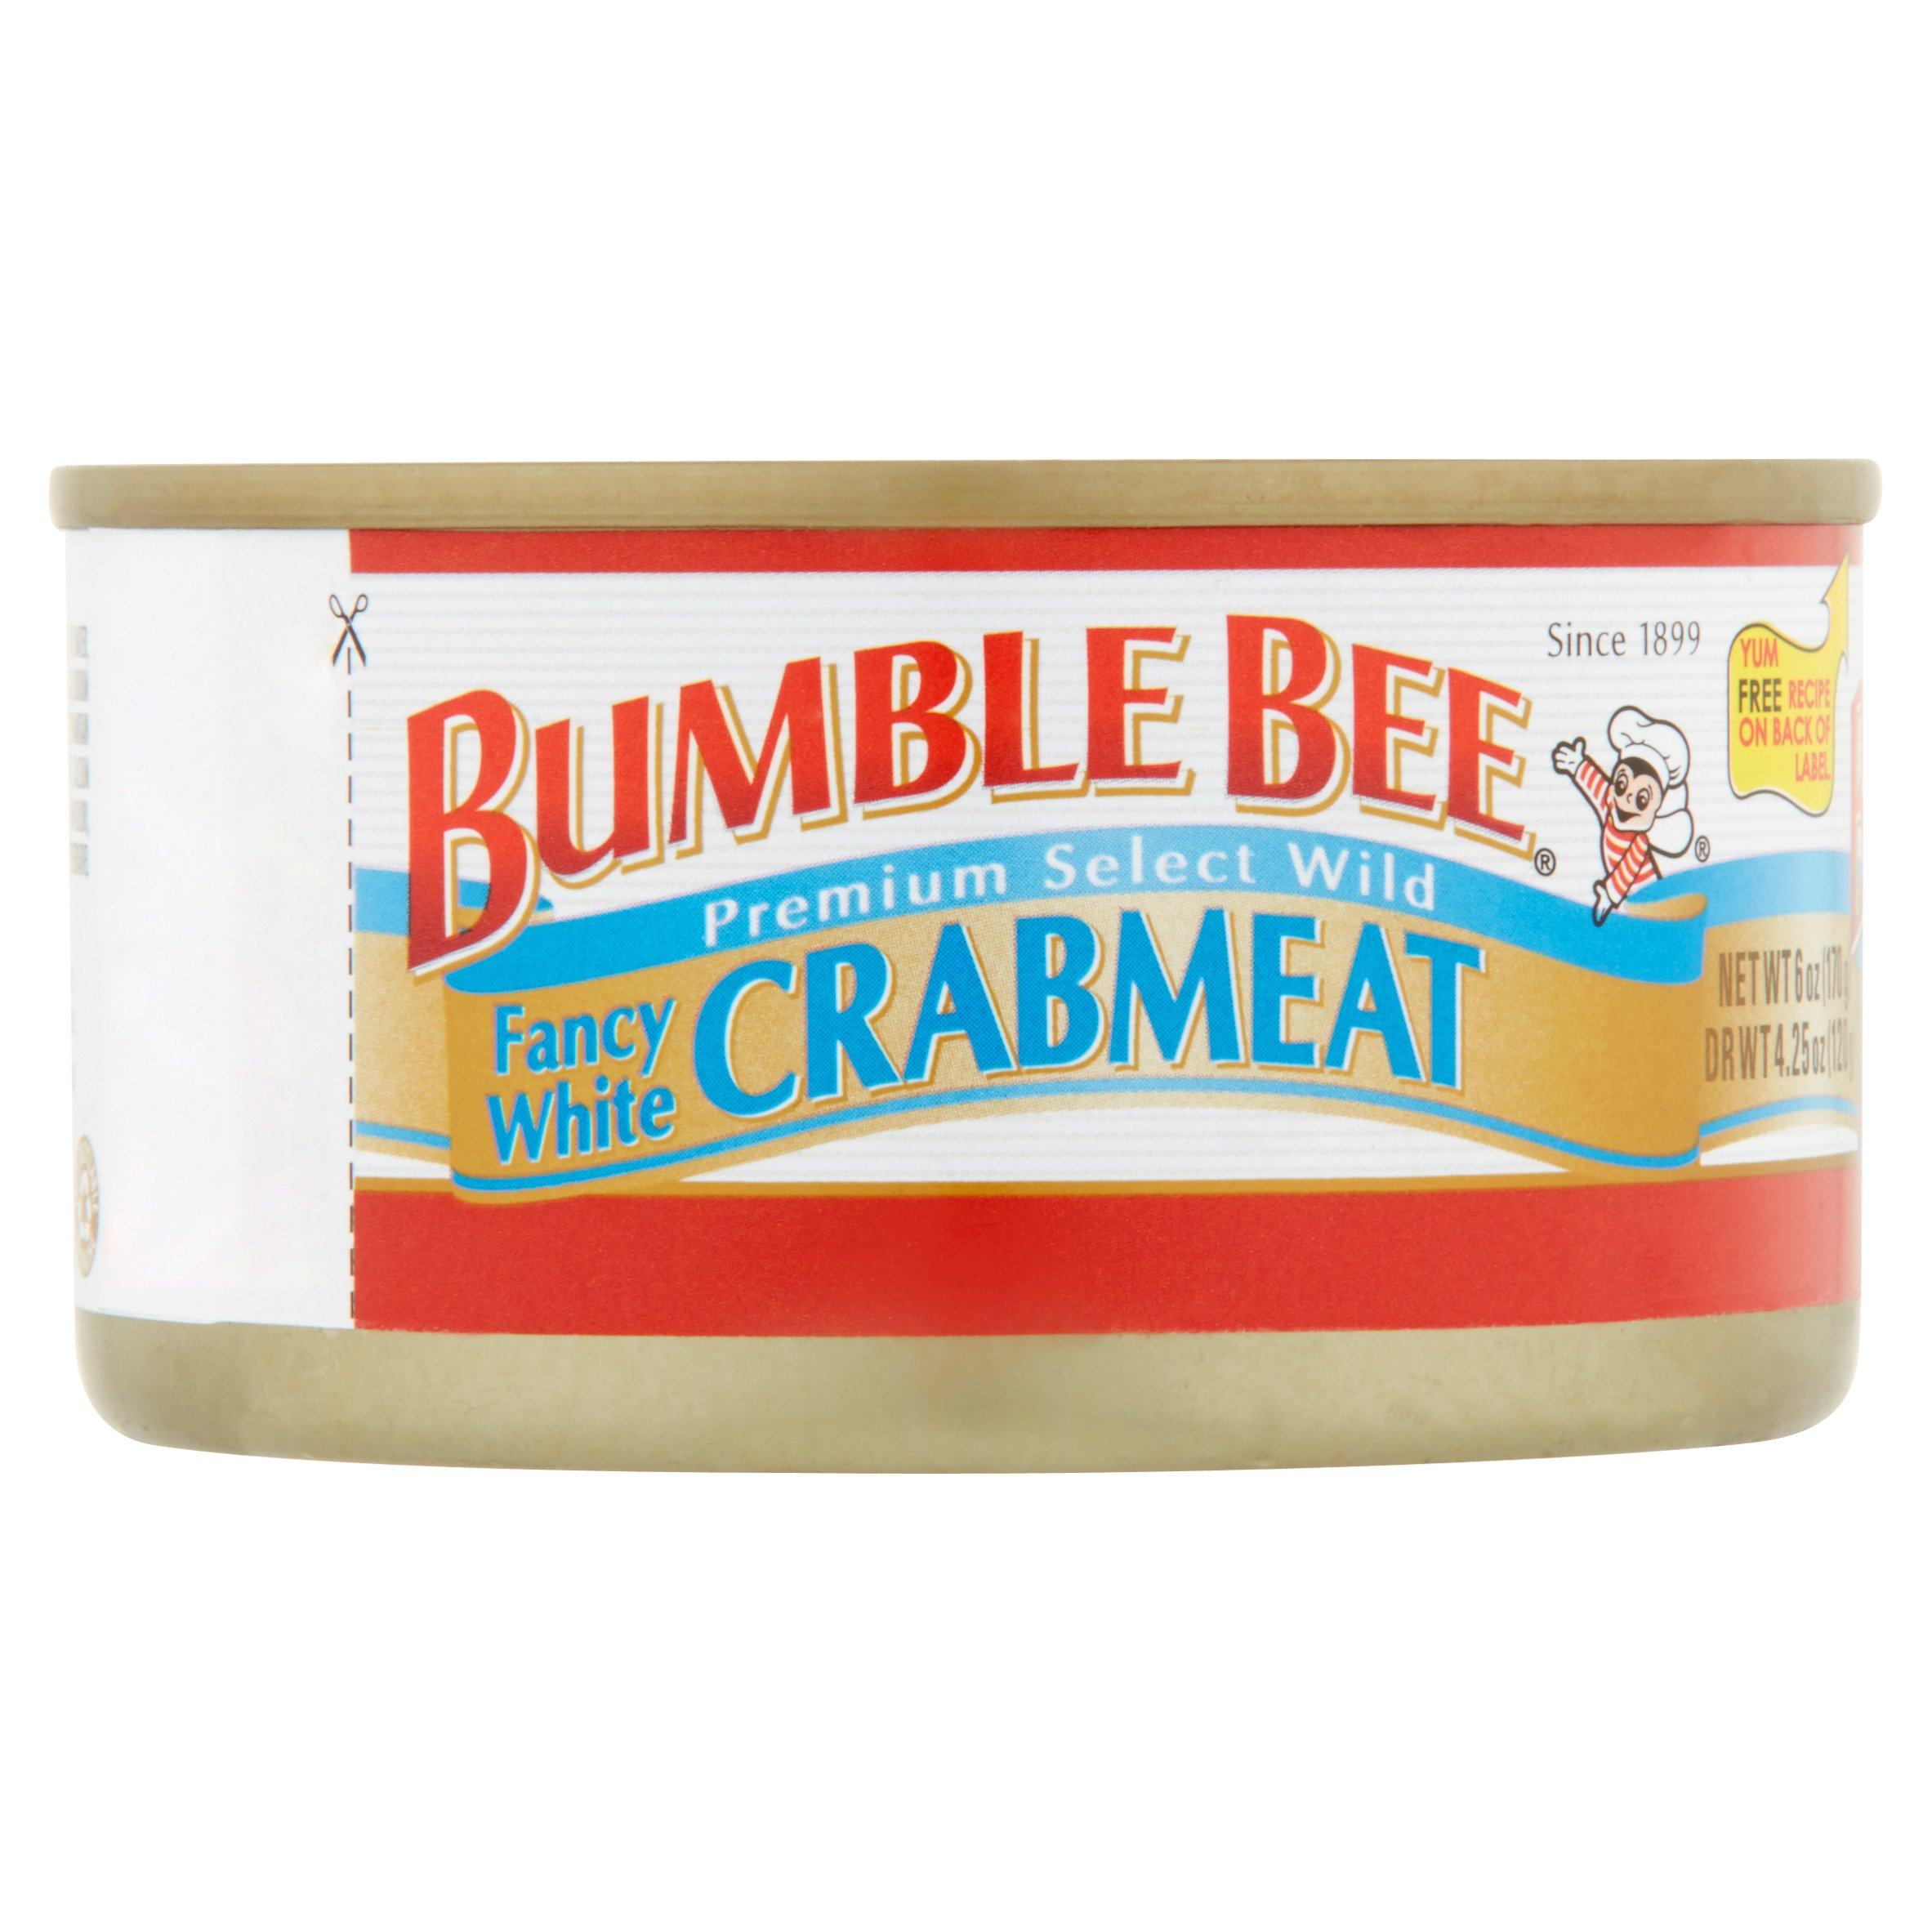 Bumble Bee Fancy White Crabmeat, 6oz can by Bumble Bee Foods